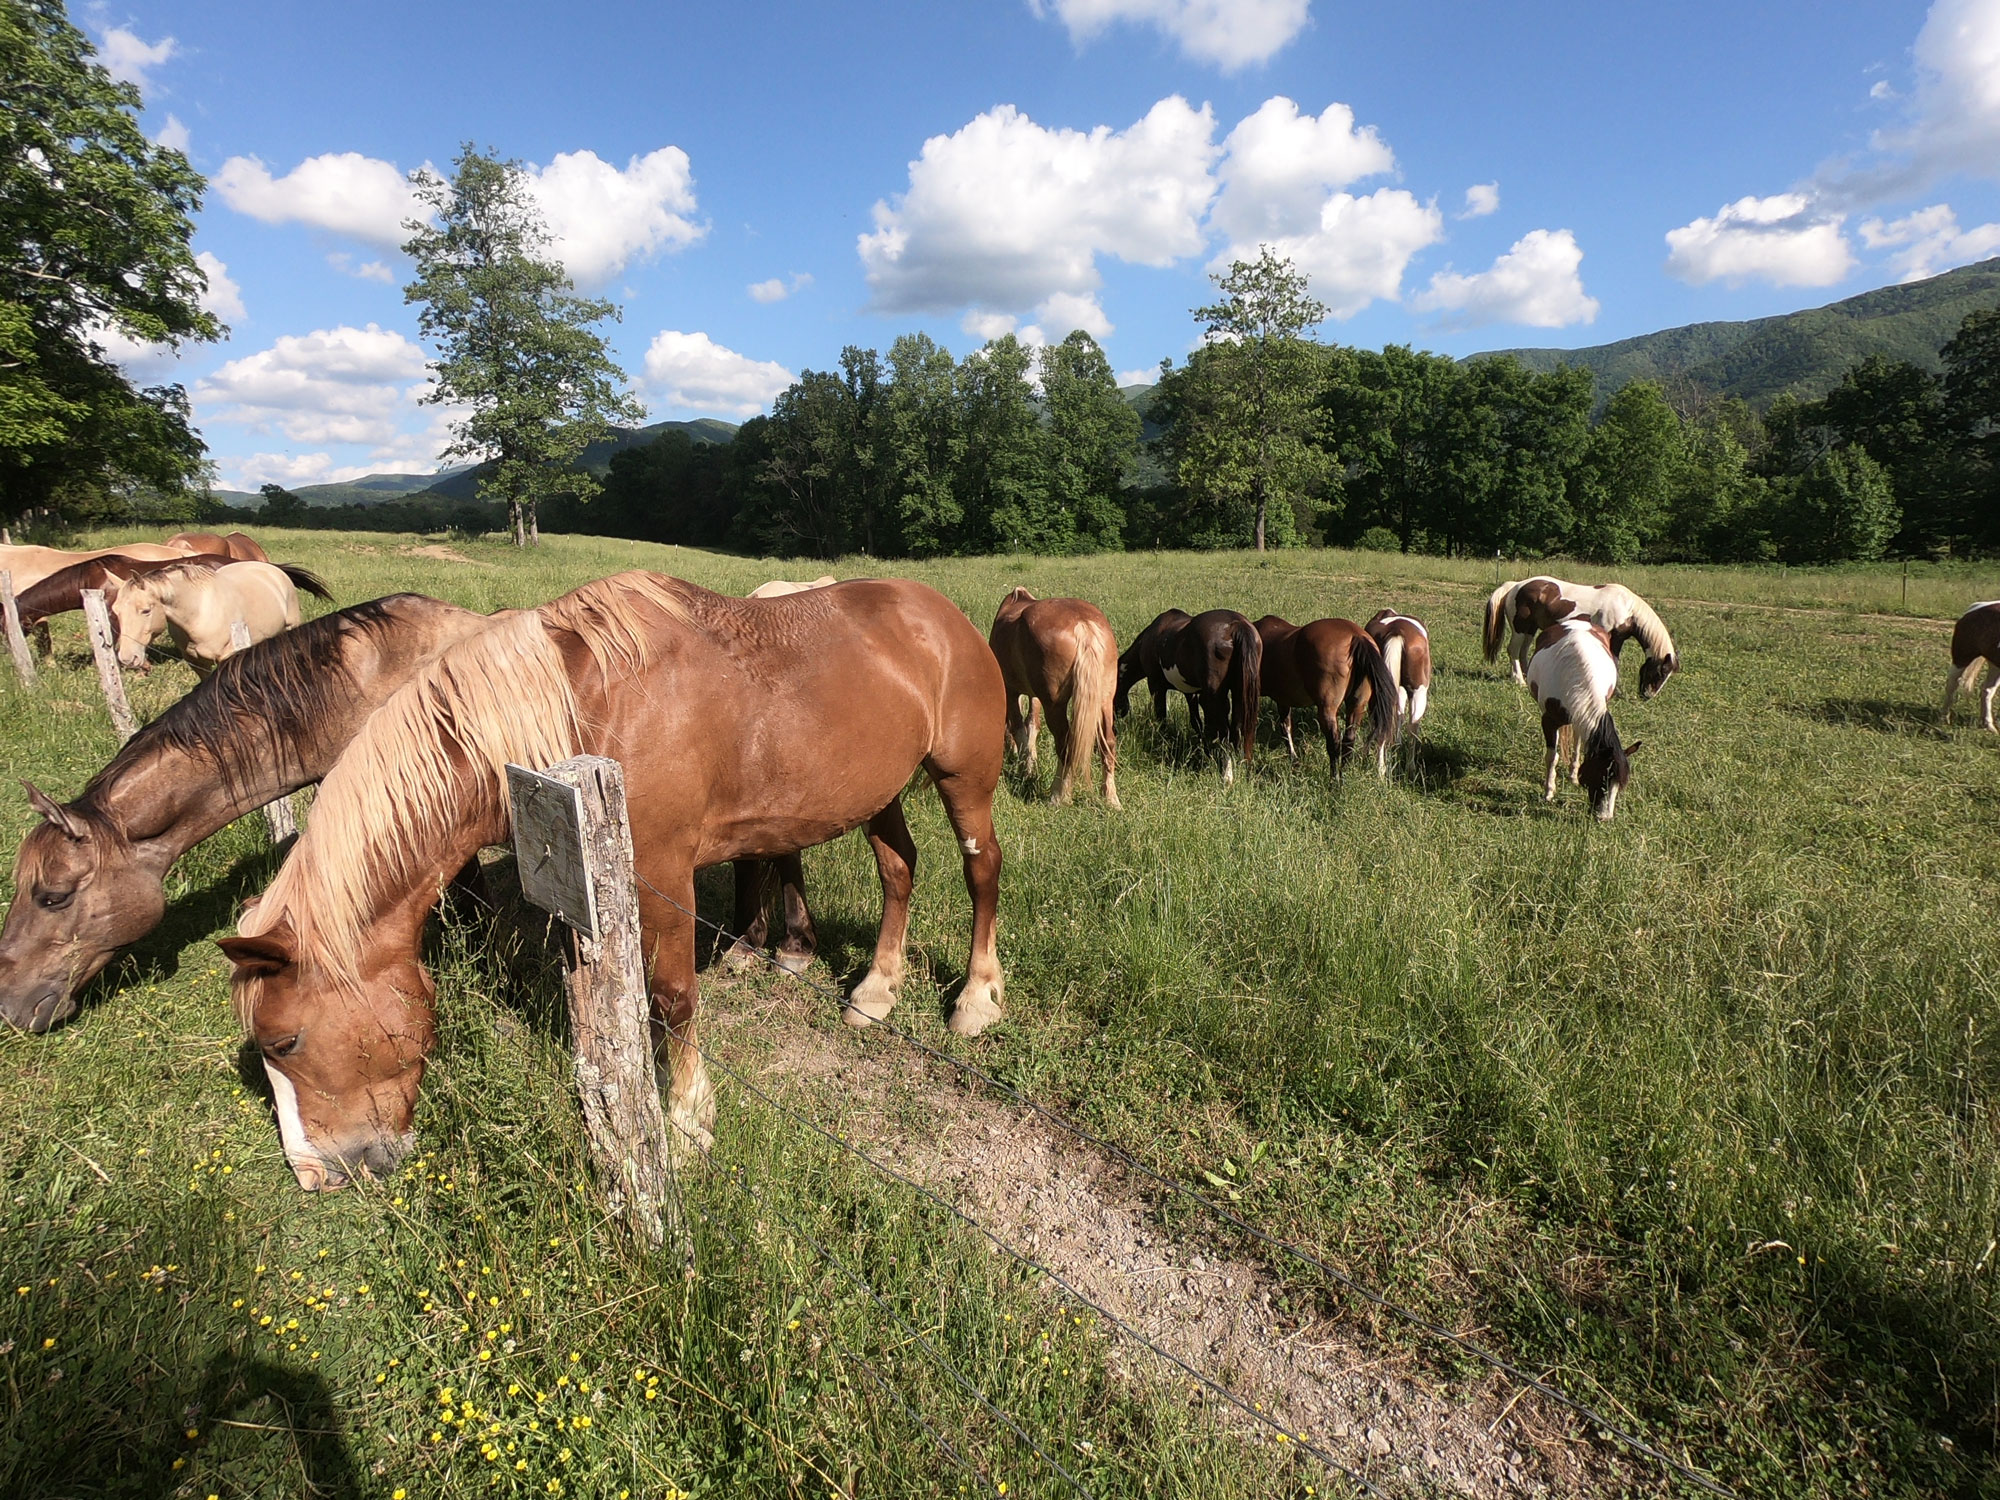 Stable riding horses in field in Cades Cove, Great Smoky Mountains National Park, Tennesseee